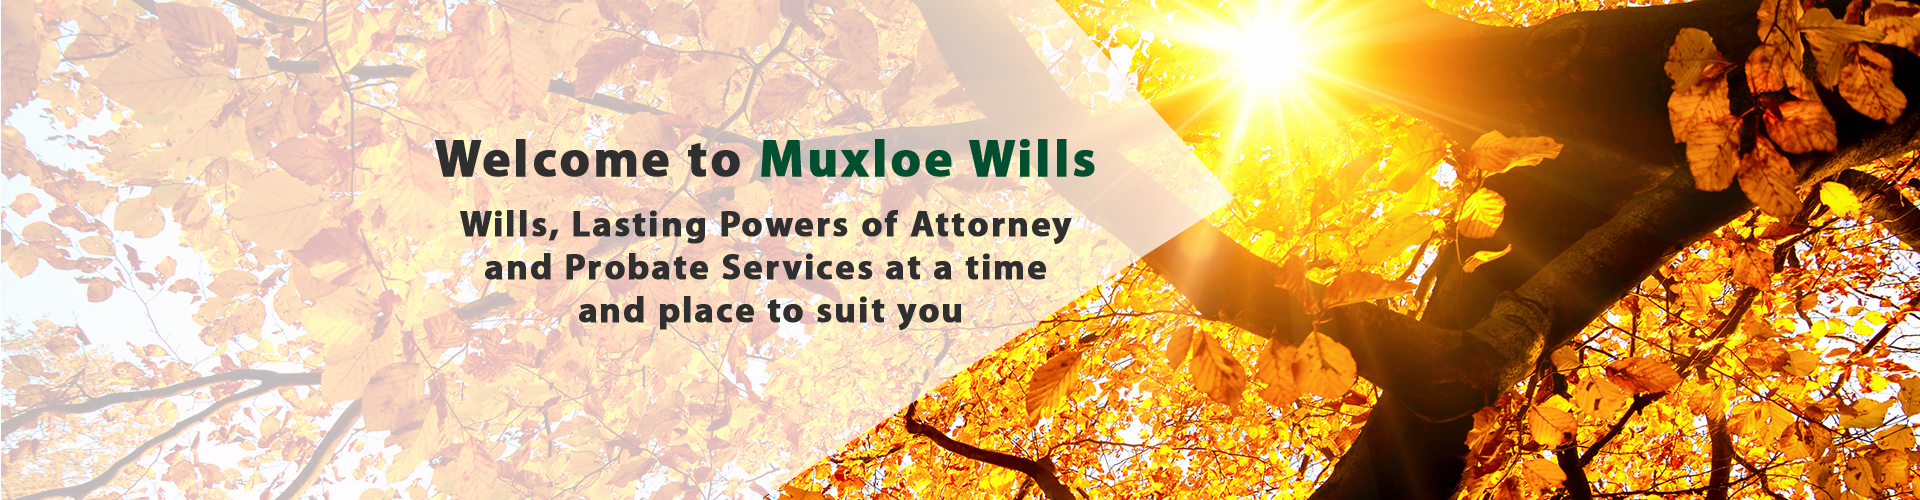 Muxloe Wills - Will Writing and Lasting Powers of Attorney Specialist - Leicester